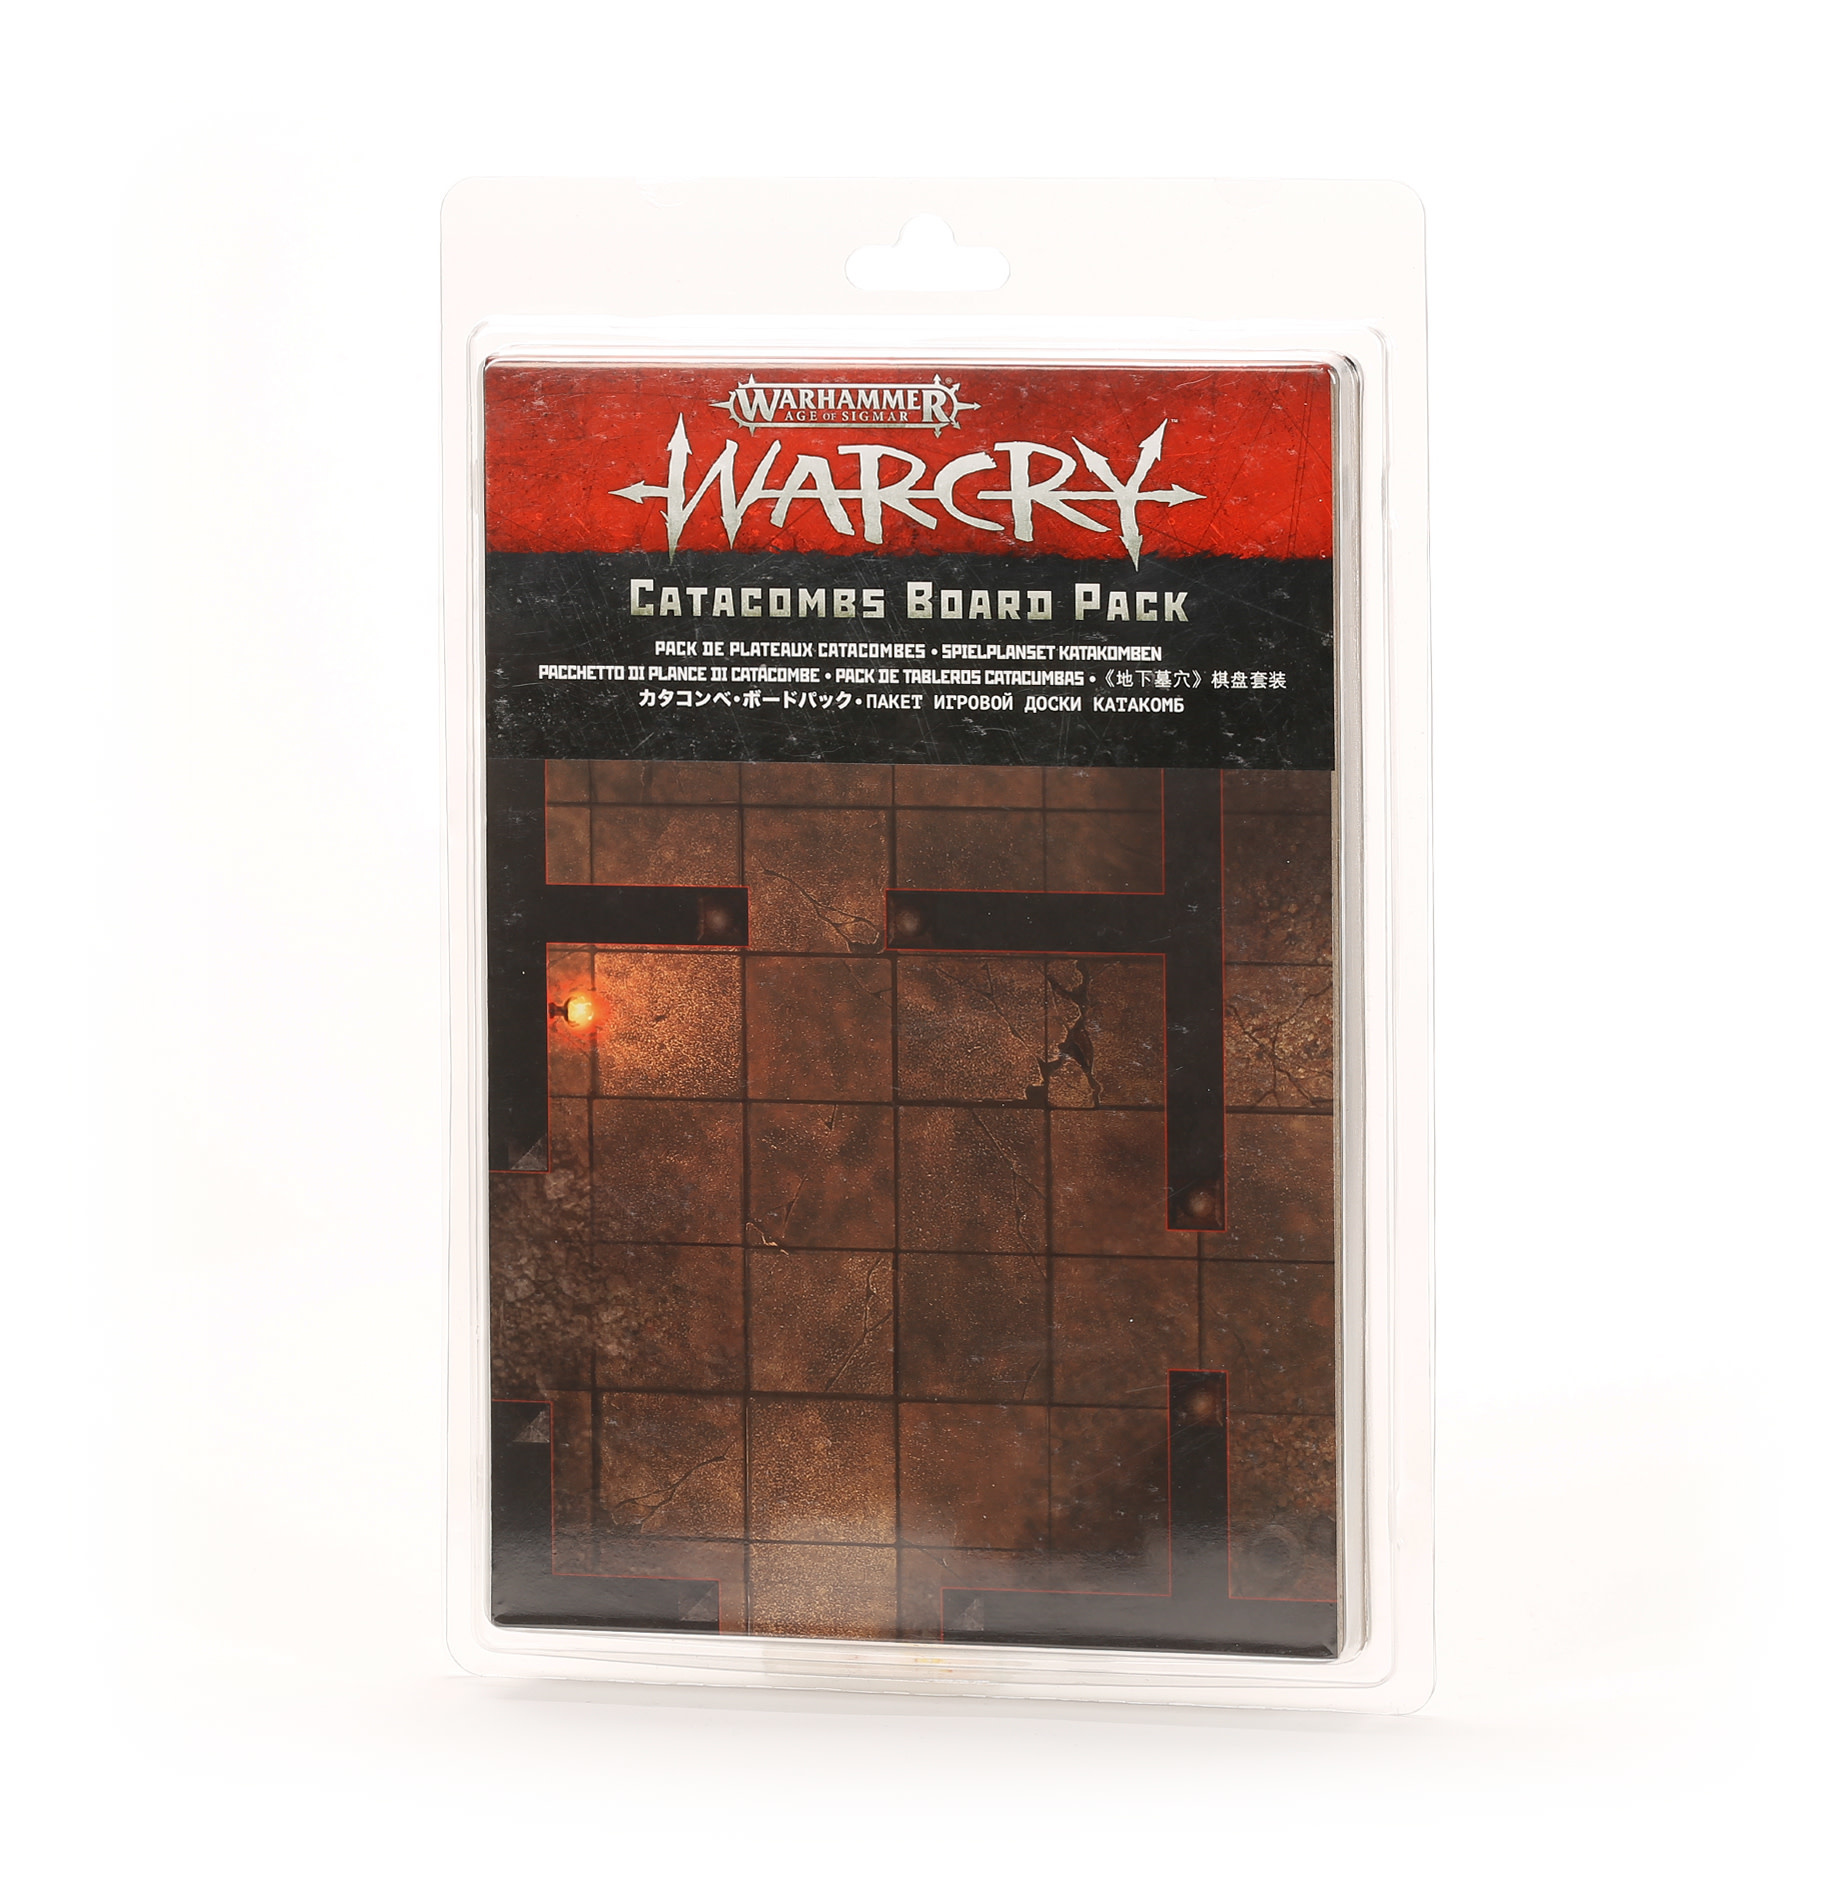 Games-Workshop Warcry Catacombs Board Pack